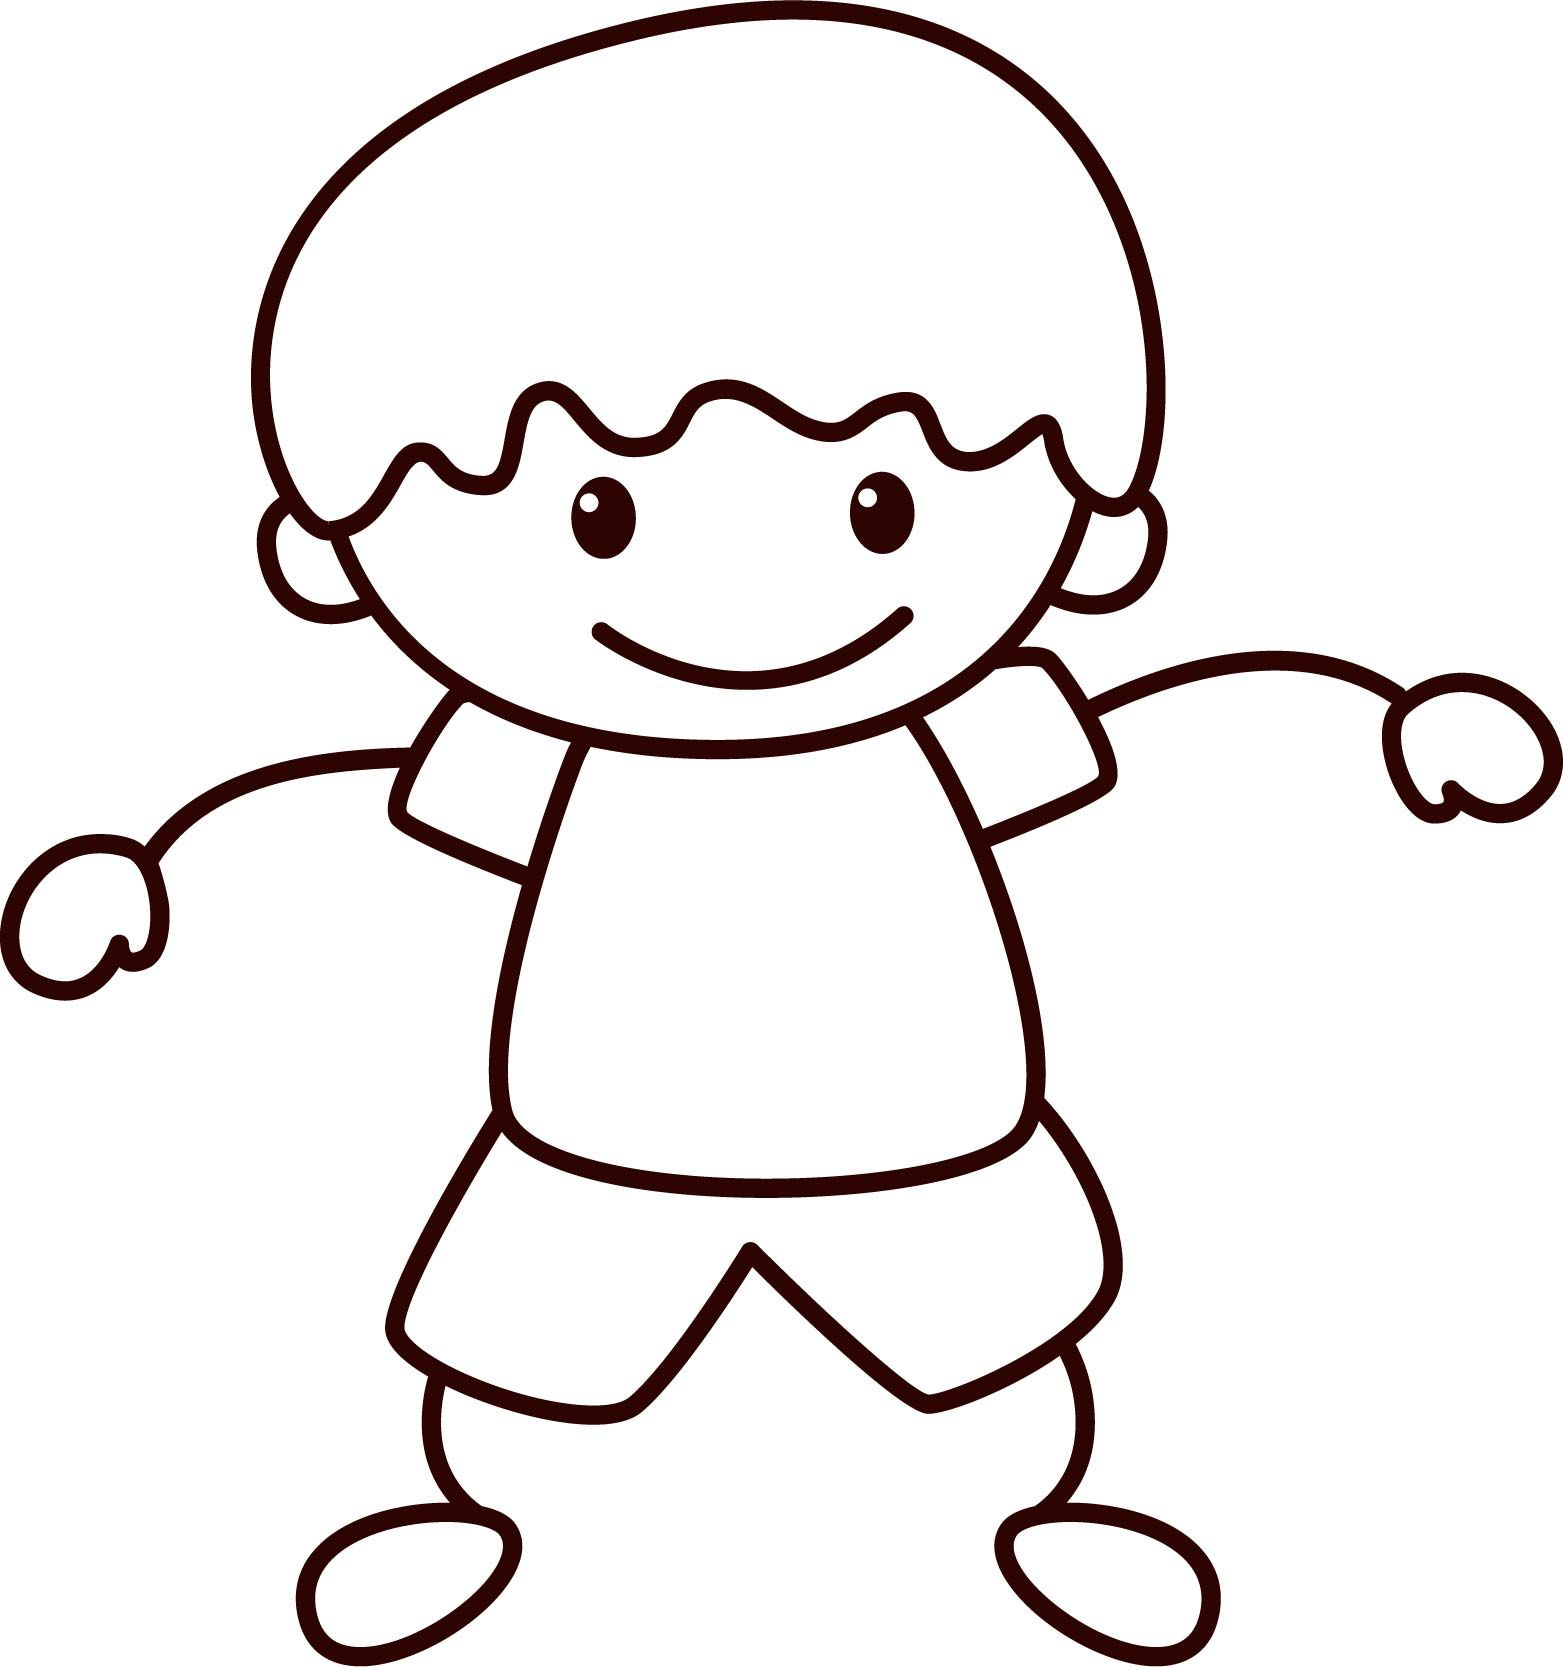 Nice Happy Children School Small Boy Coloring Page Coloring Pages For Boys School Coloring Pages Coloring Pages For Kids